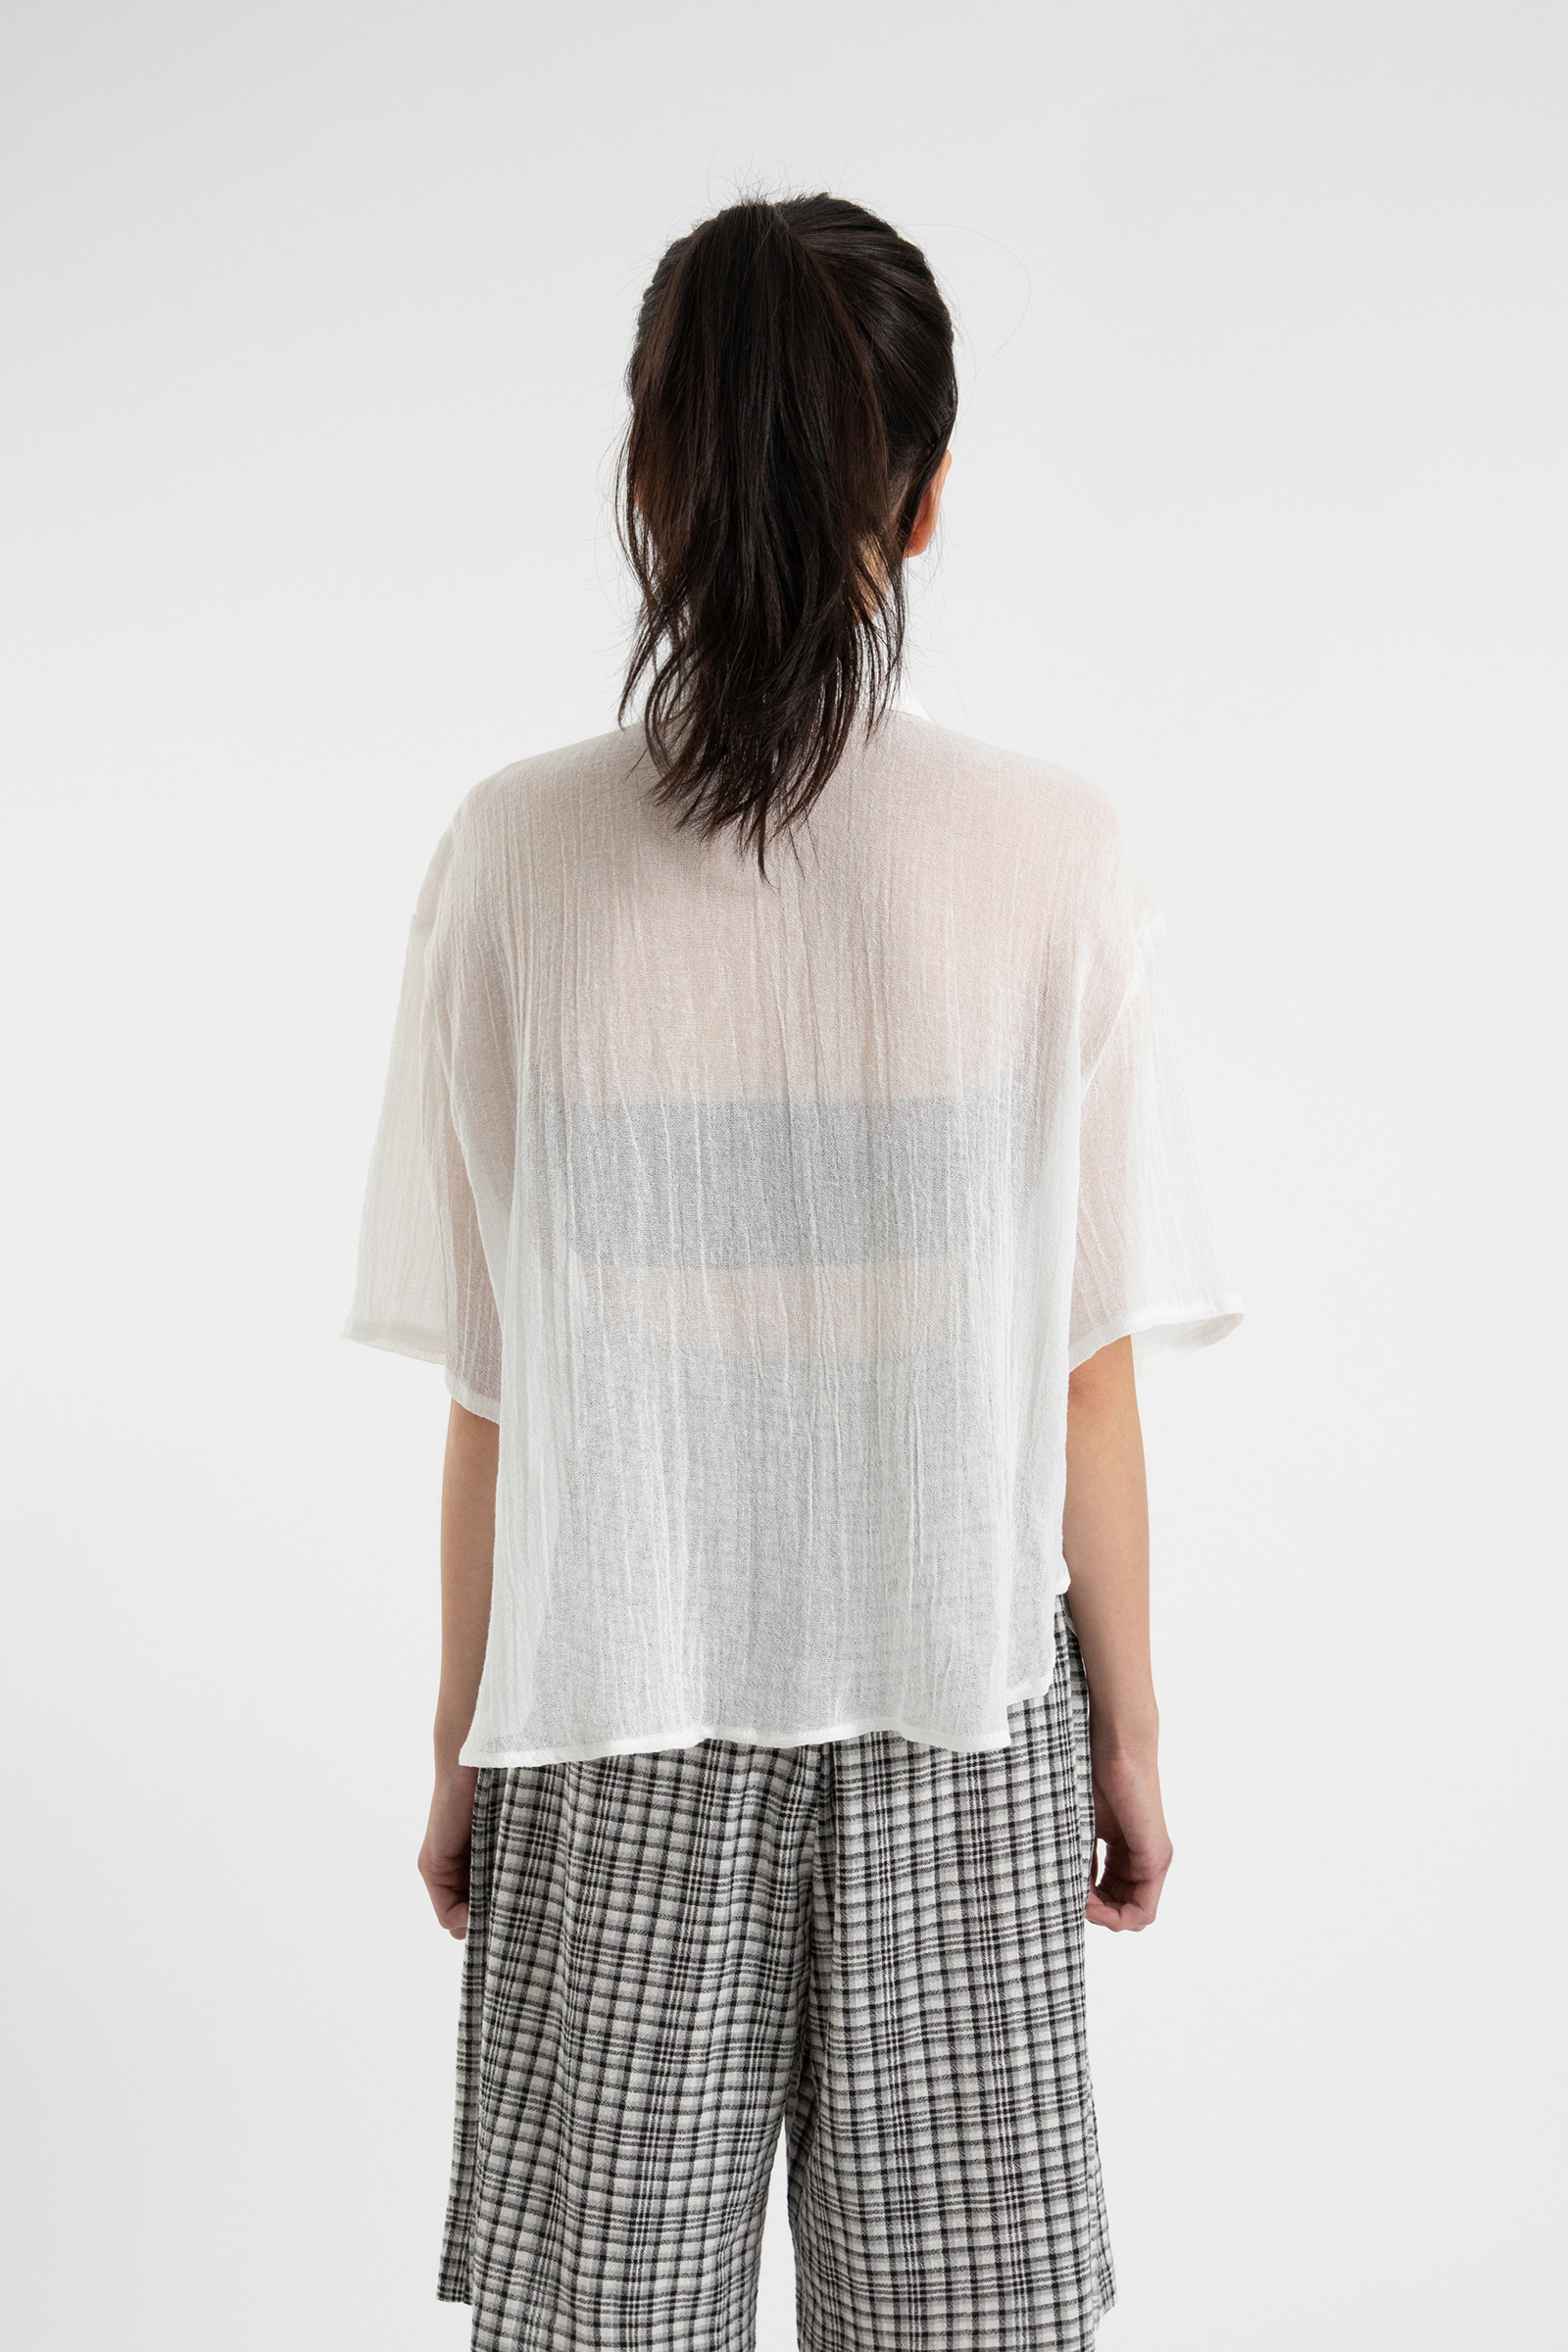 Melo Crease see-through half shirt